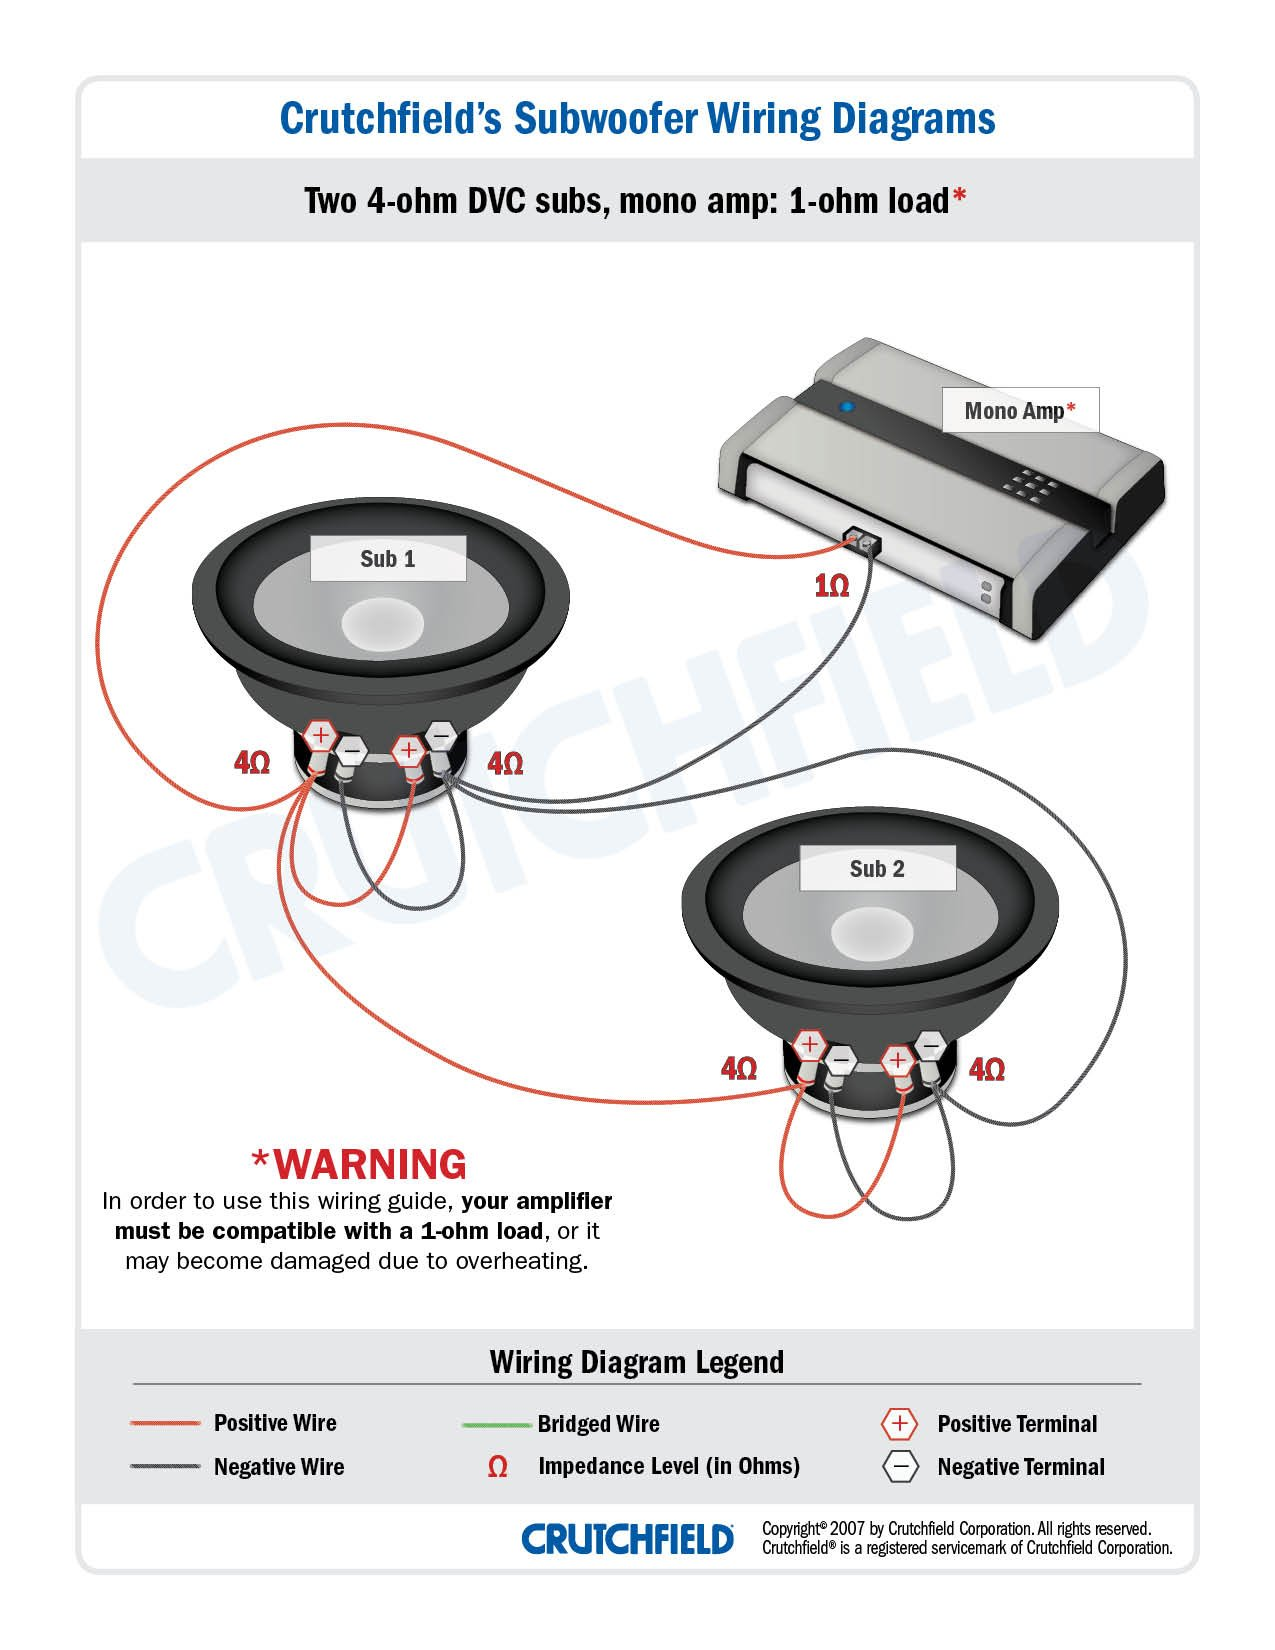 Subwoofer Wiring Diagrams How To Wire Your Subs 2 Way In Case The 4 Ohm Scheme Is Only Safe Connect That Gear Together